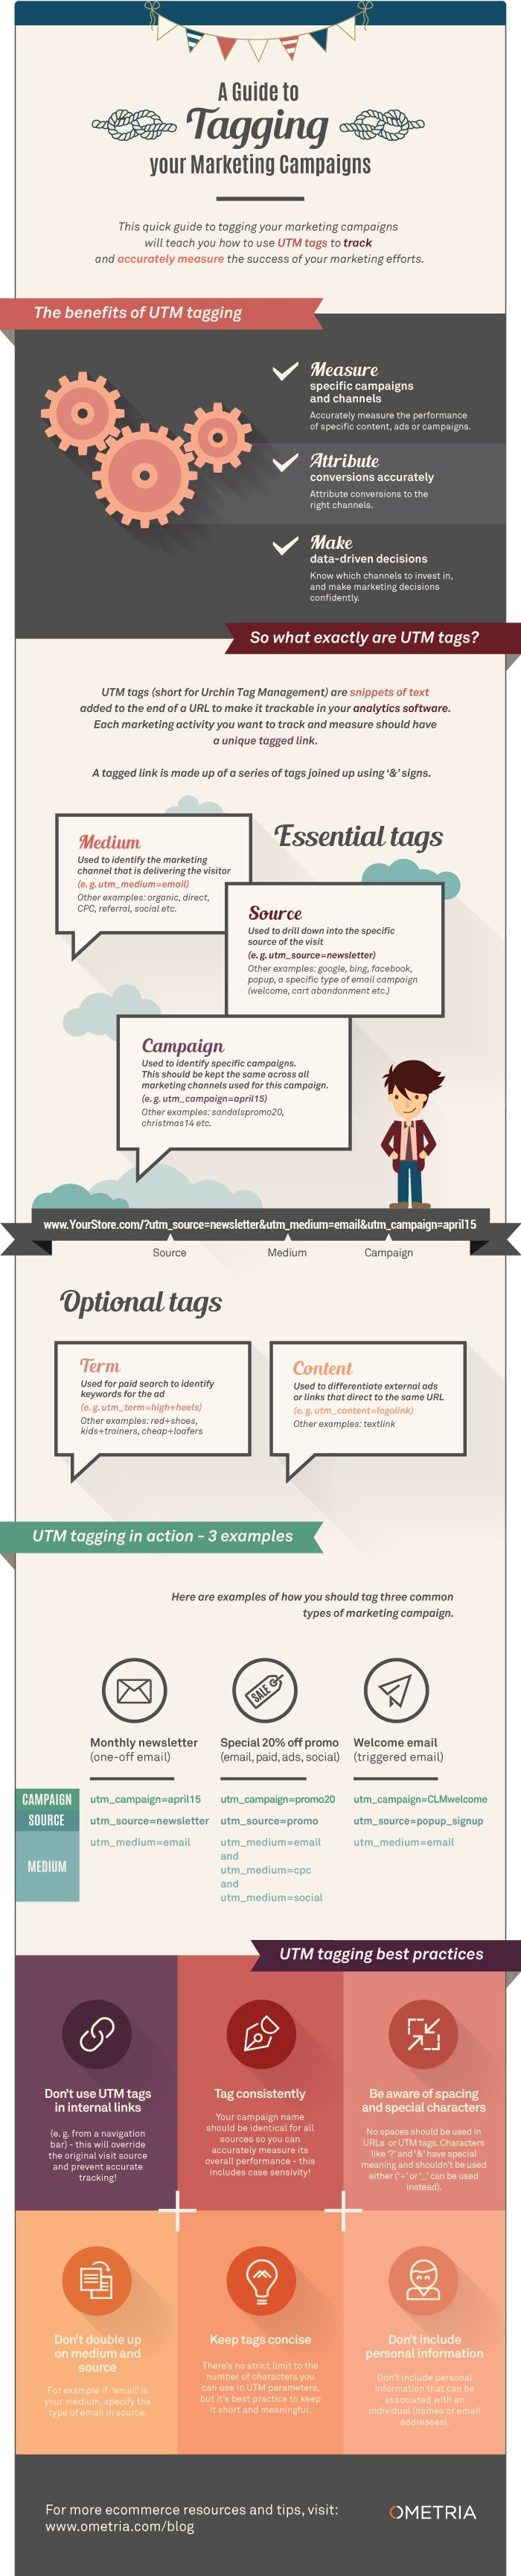 The Definitive Guide to UTM Tagging